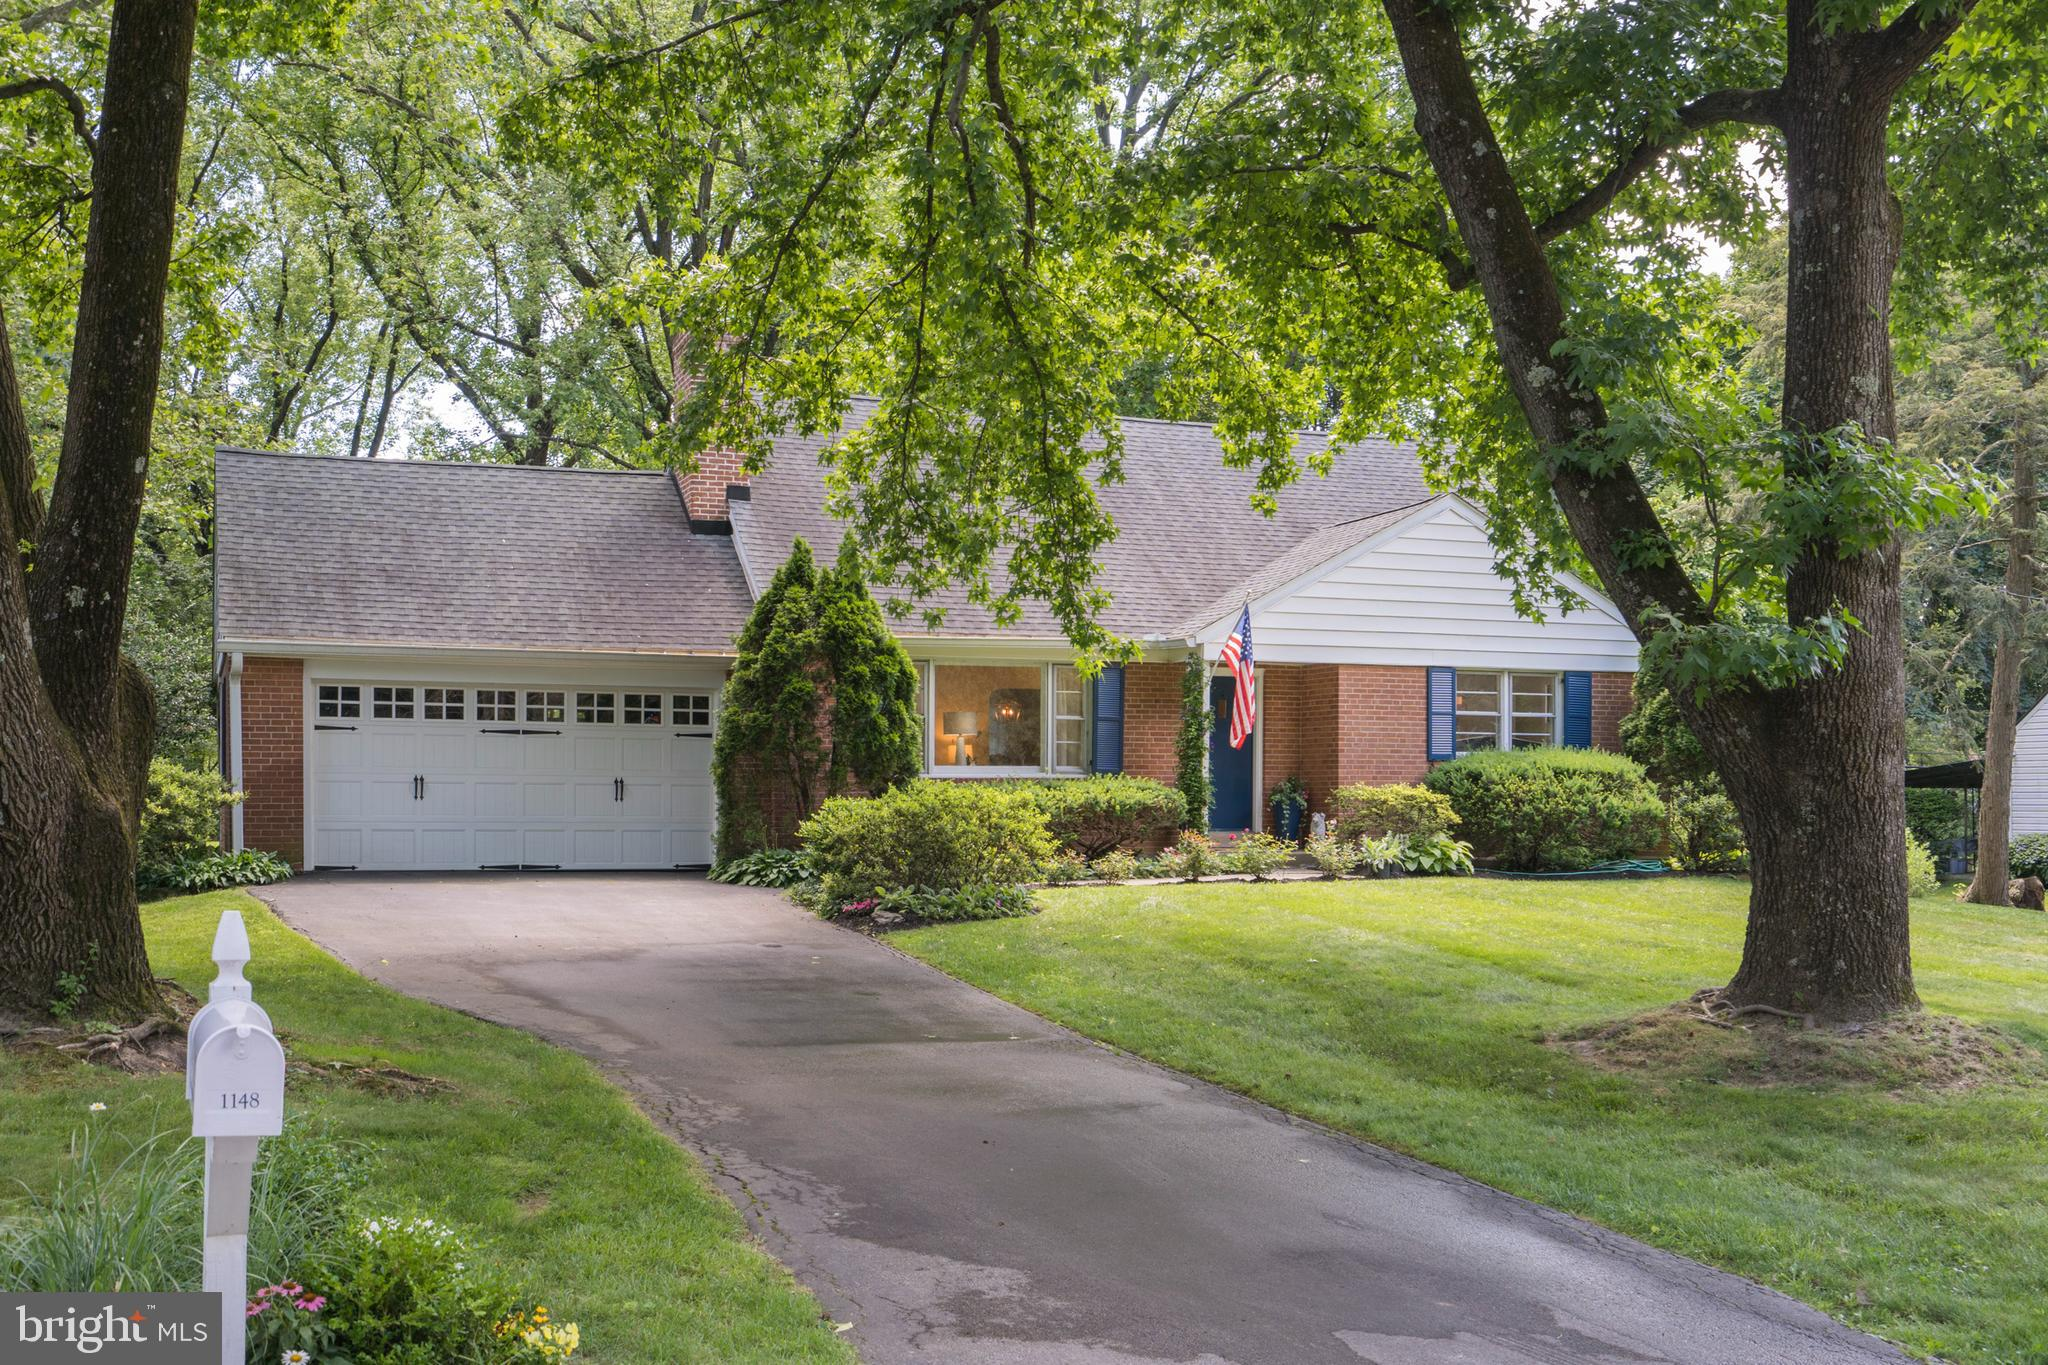 Here is an opportunity to own a wonderful brick cape cod with a 2-car garage in the highly desirable Valley Forge Estates in the top-ranked Tredyffrin-Easttown School District. This home is situated on close to 3-quarters of an acre on a beautiful level lot giving you lots of room for possible expansion. The interior features tons of natural light, fresh and neutral painted rooms, and gleaming hardwood throughout. The formal living room has a rustic brick fireplace giving you and your guest a warm and welcoming reception. The dining room is located off the living room and kitchen providing a cozy and intimate space. The eat-in kitchen leads out to the screened-in back patio and has abundant counter space and cabinets. There are two spacious first floor bedrooms each with ample closet space with access to a full bath. On the second level, you will find two additional wonderful sized bedrooms with access to the full bath in the hall. The basement allows for a ton of storage and provides lots of possibilities for additional living space. You will love entertaining on the fabulous patio with views of the mature landscape giving you a calming sanctuary to enjoy for many years to come. Located close to major shopping and corporate centers, King of Prussia, Gateway Shopping Center, Wegmans Market, Trader Joes, National and State Parks walking trails, and so much more. Don't miss your opportunity to be the next owner to come home to this special property!